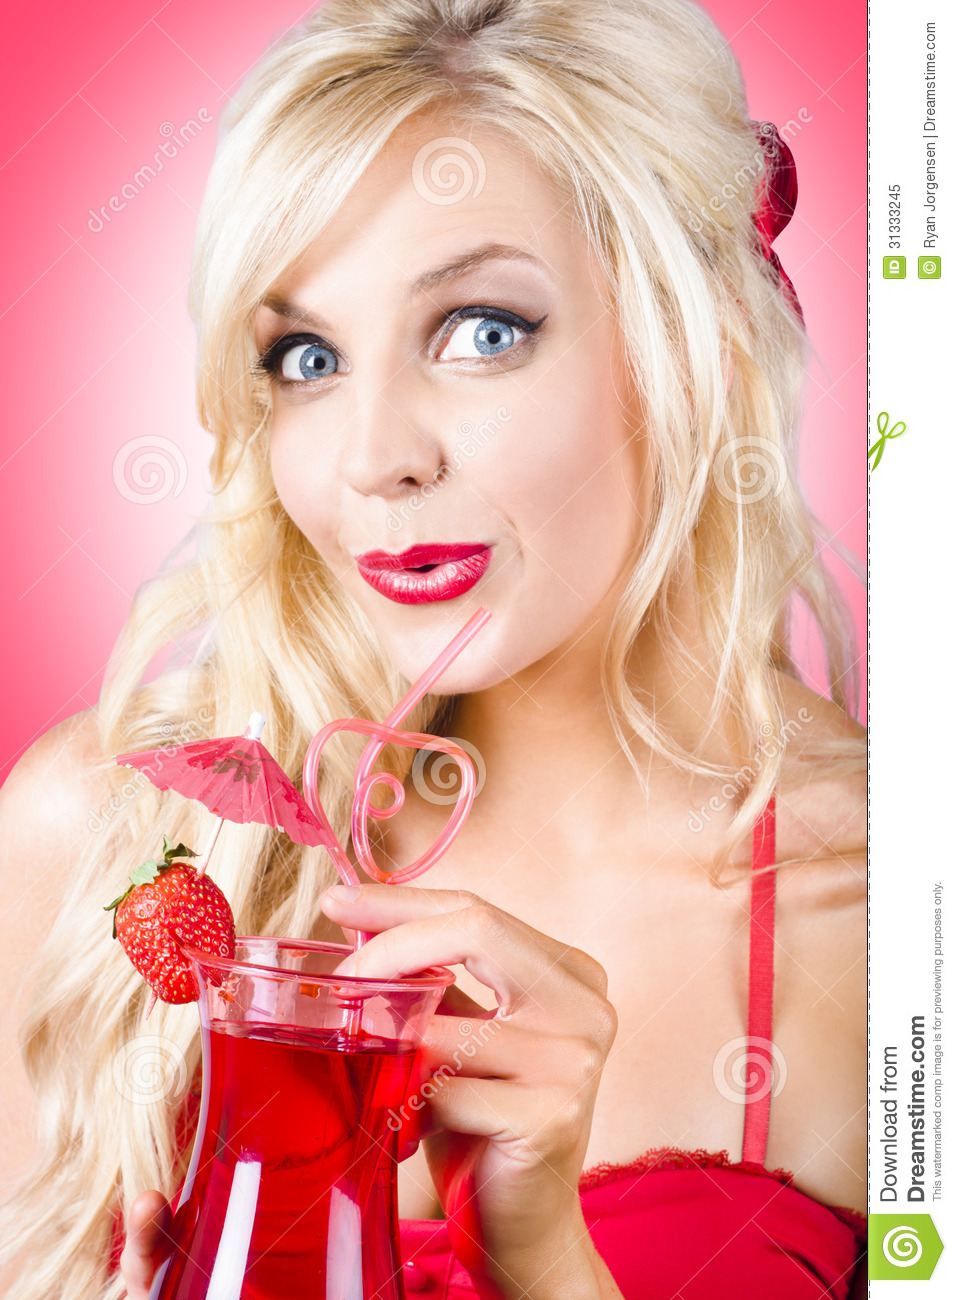 surprised young woman drinking nightclub cocktail royalty free stock